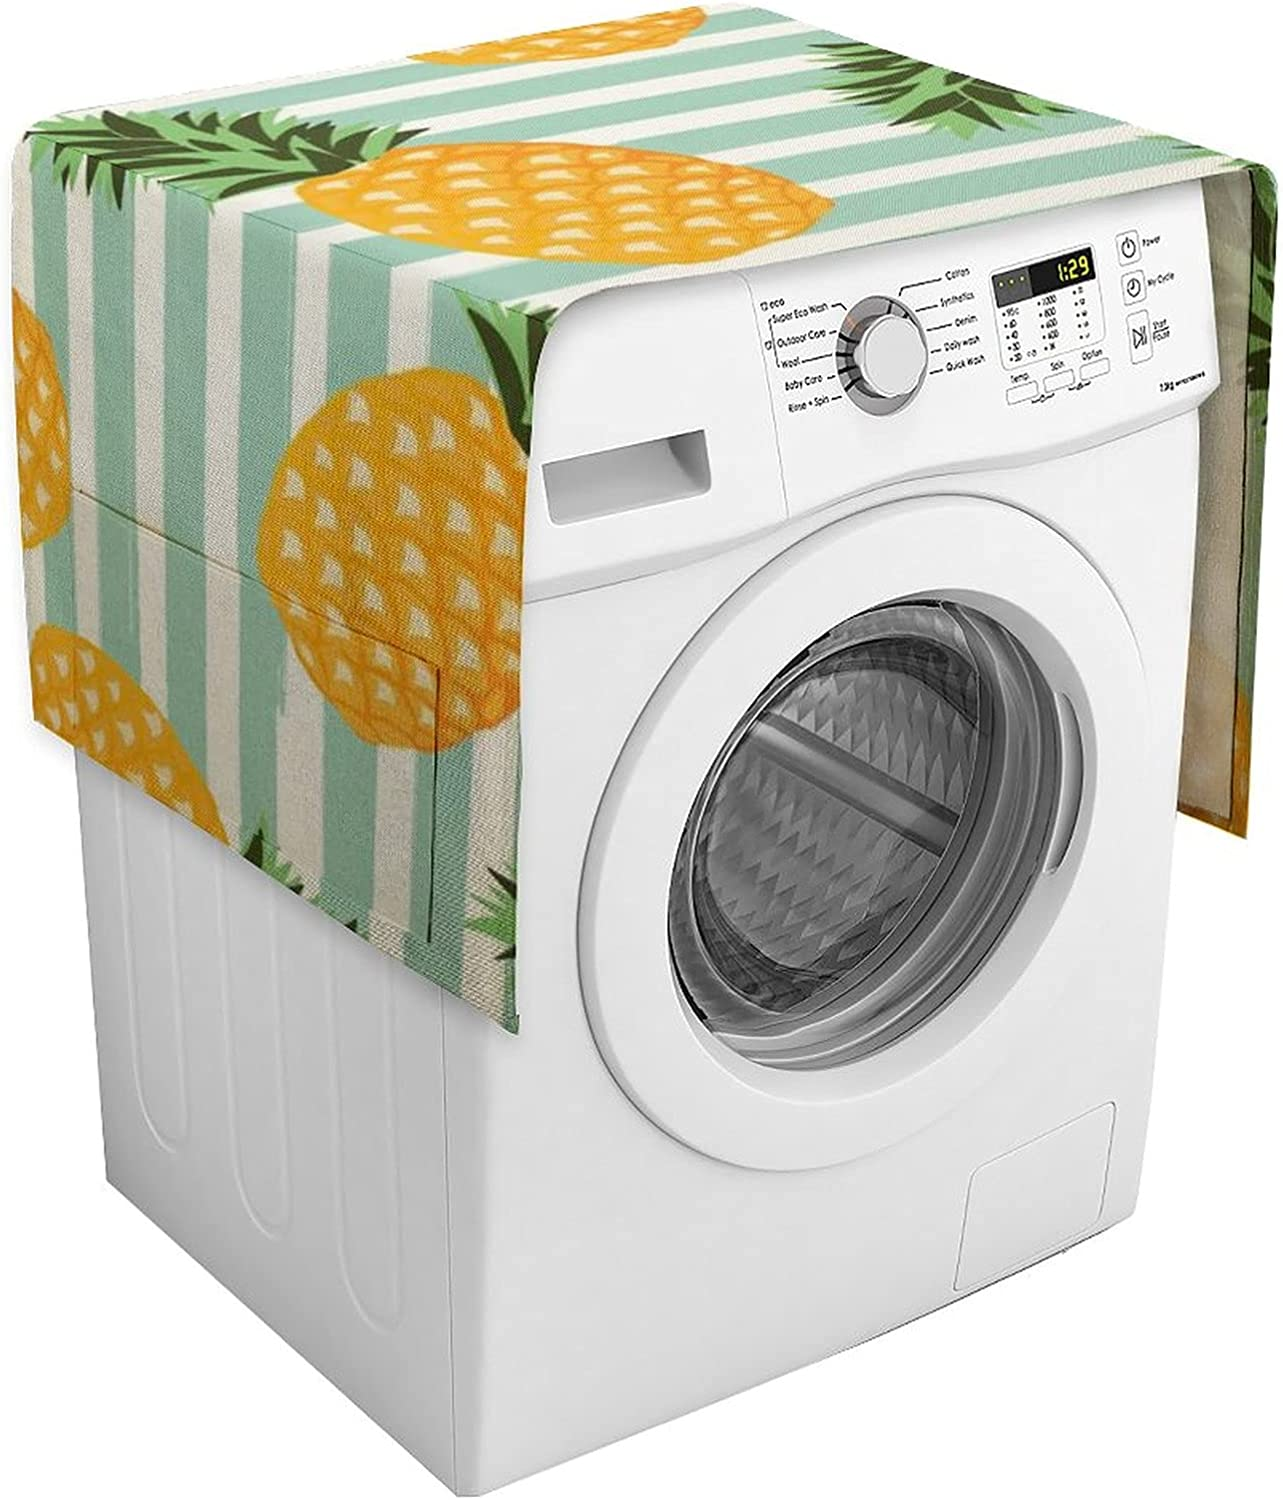 Multi-Purpose Washing Machine Deluxe Covers Protector Outlet sale feature Washer Appliance